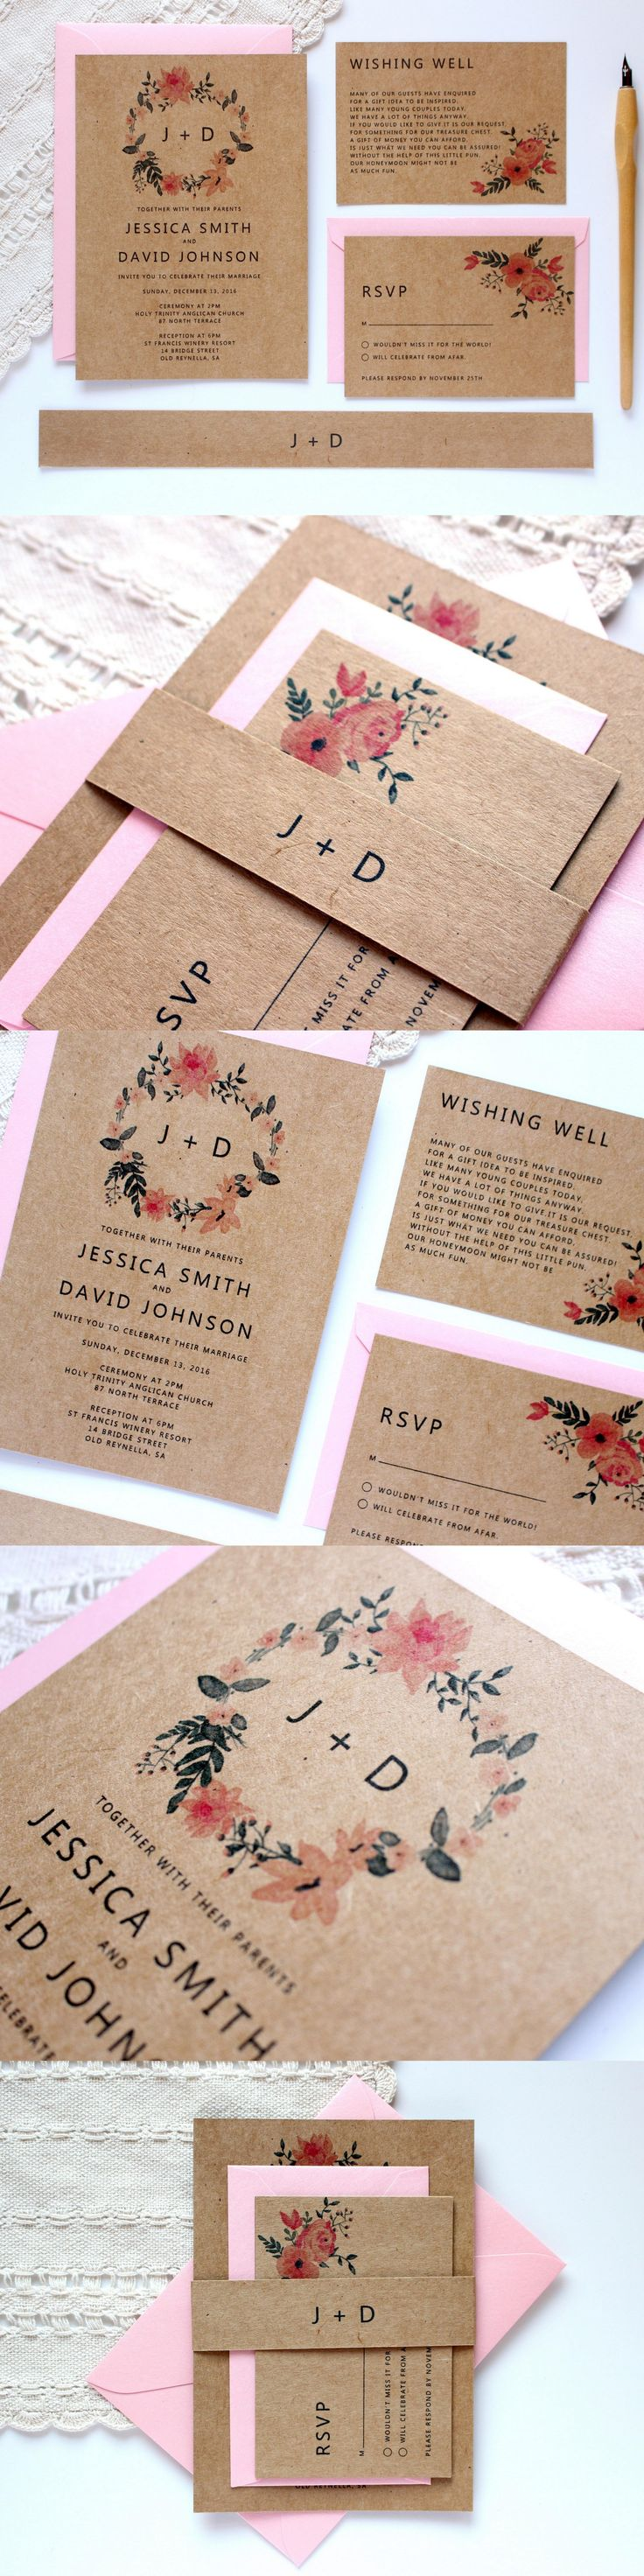 sample of wedding invitations templates%0A Kraft wedding invitation with pink floral wreath by Paper Bound Love